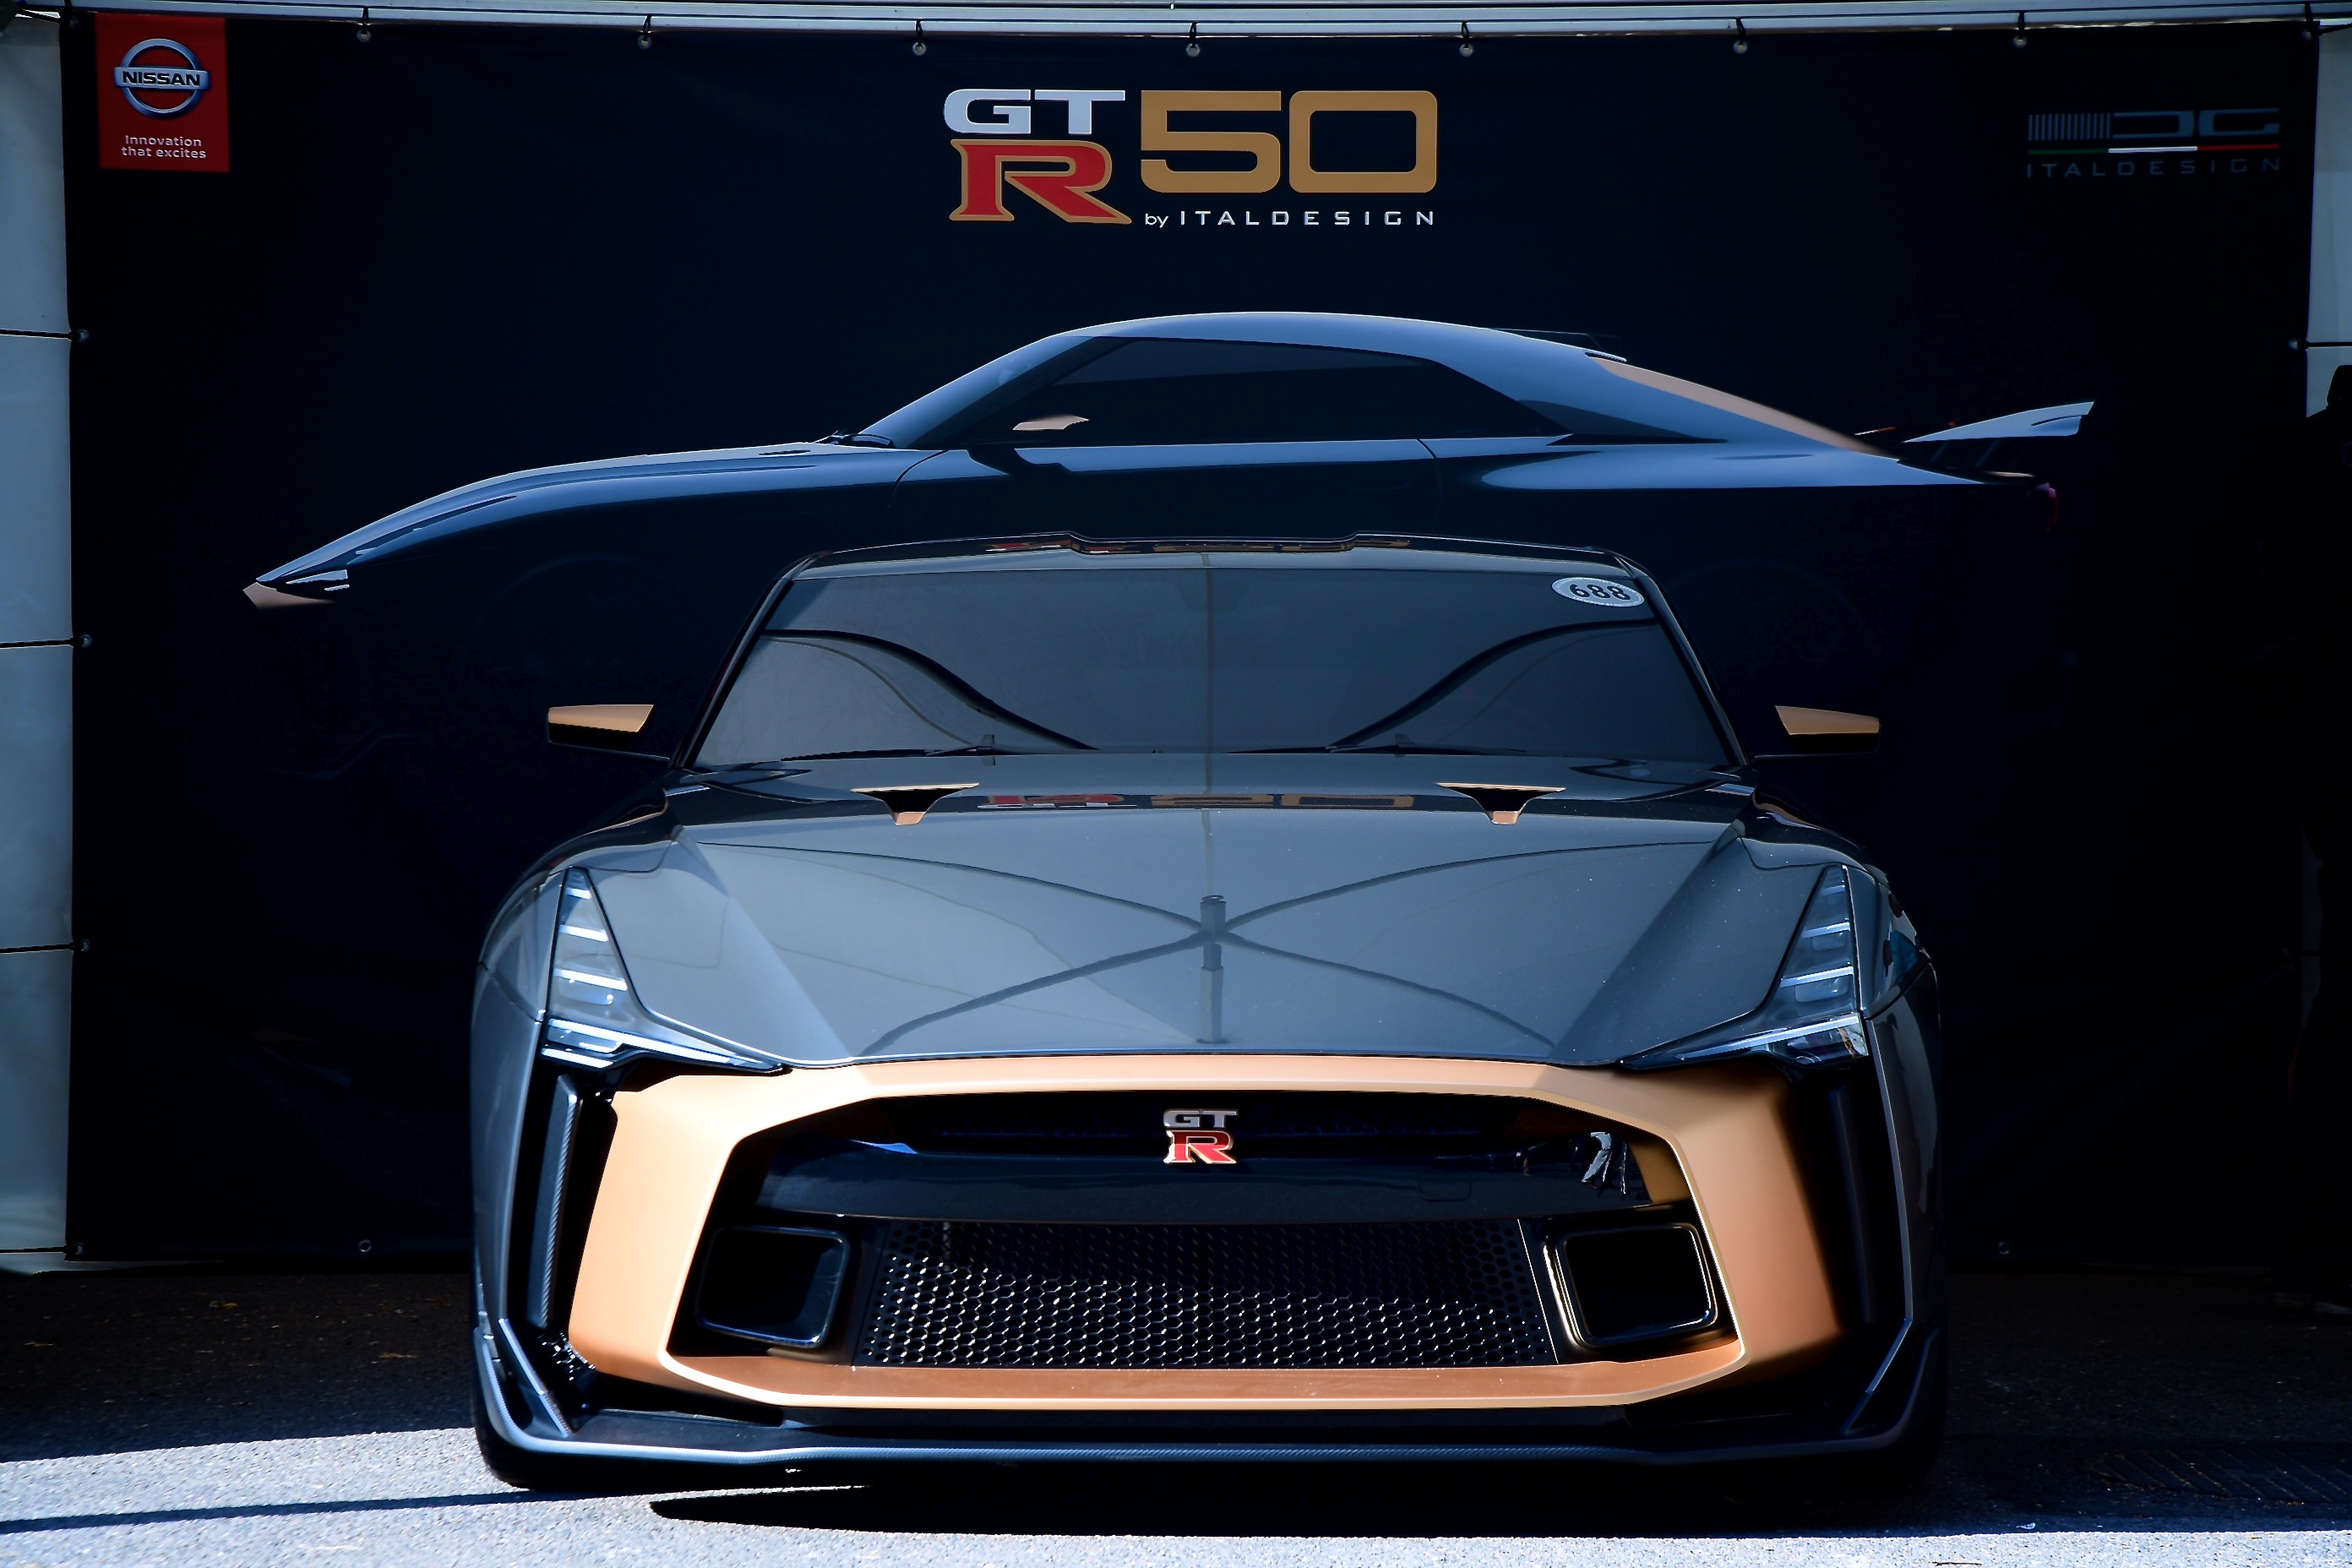 Nissan And Italdesign Gtr50 Limited To 50 Made Starting At